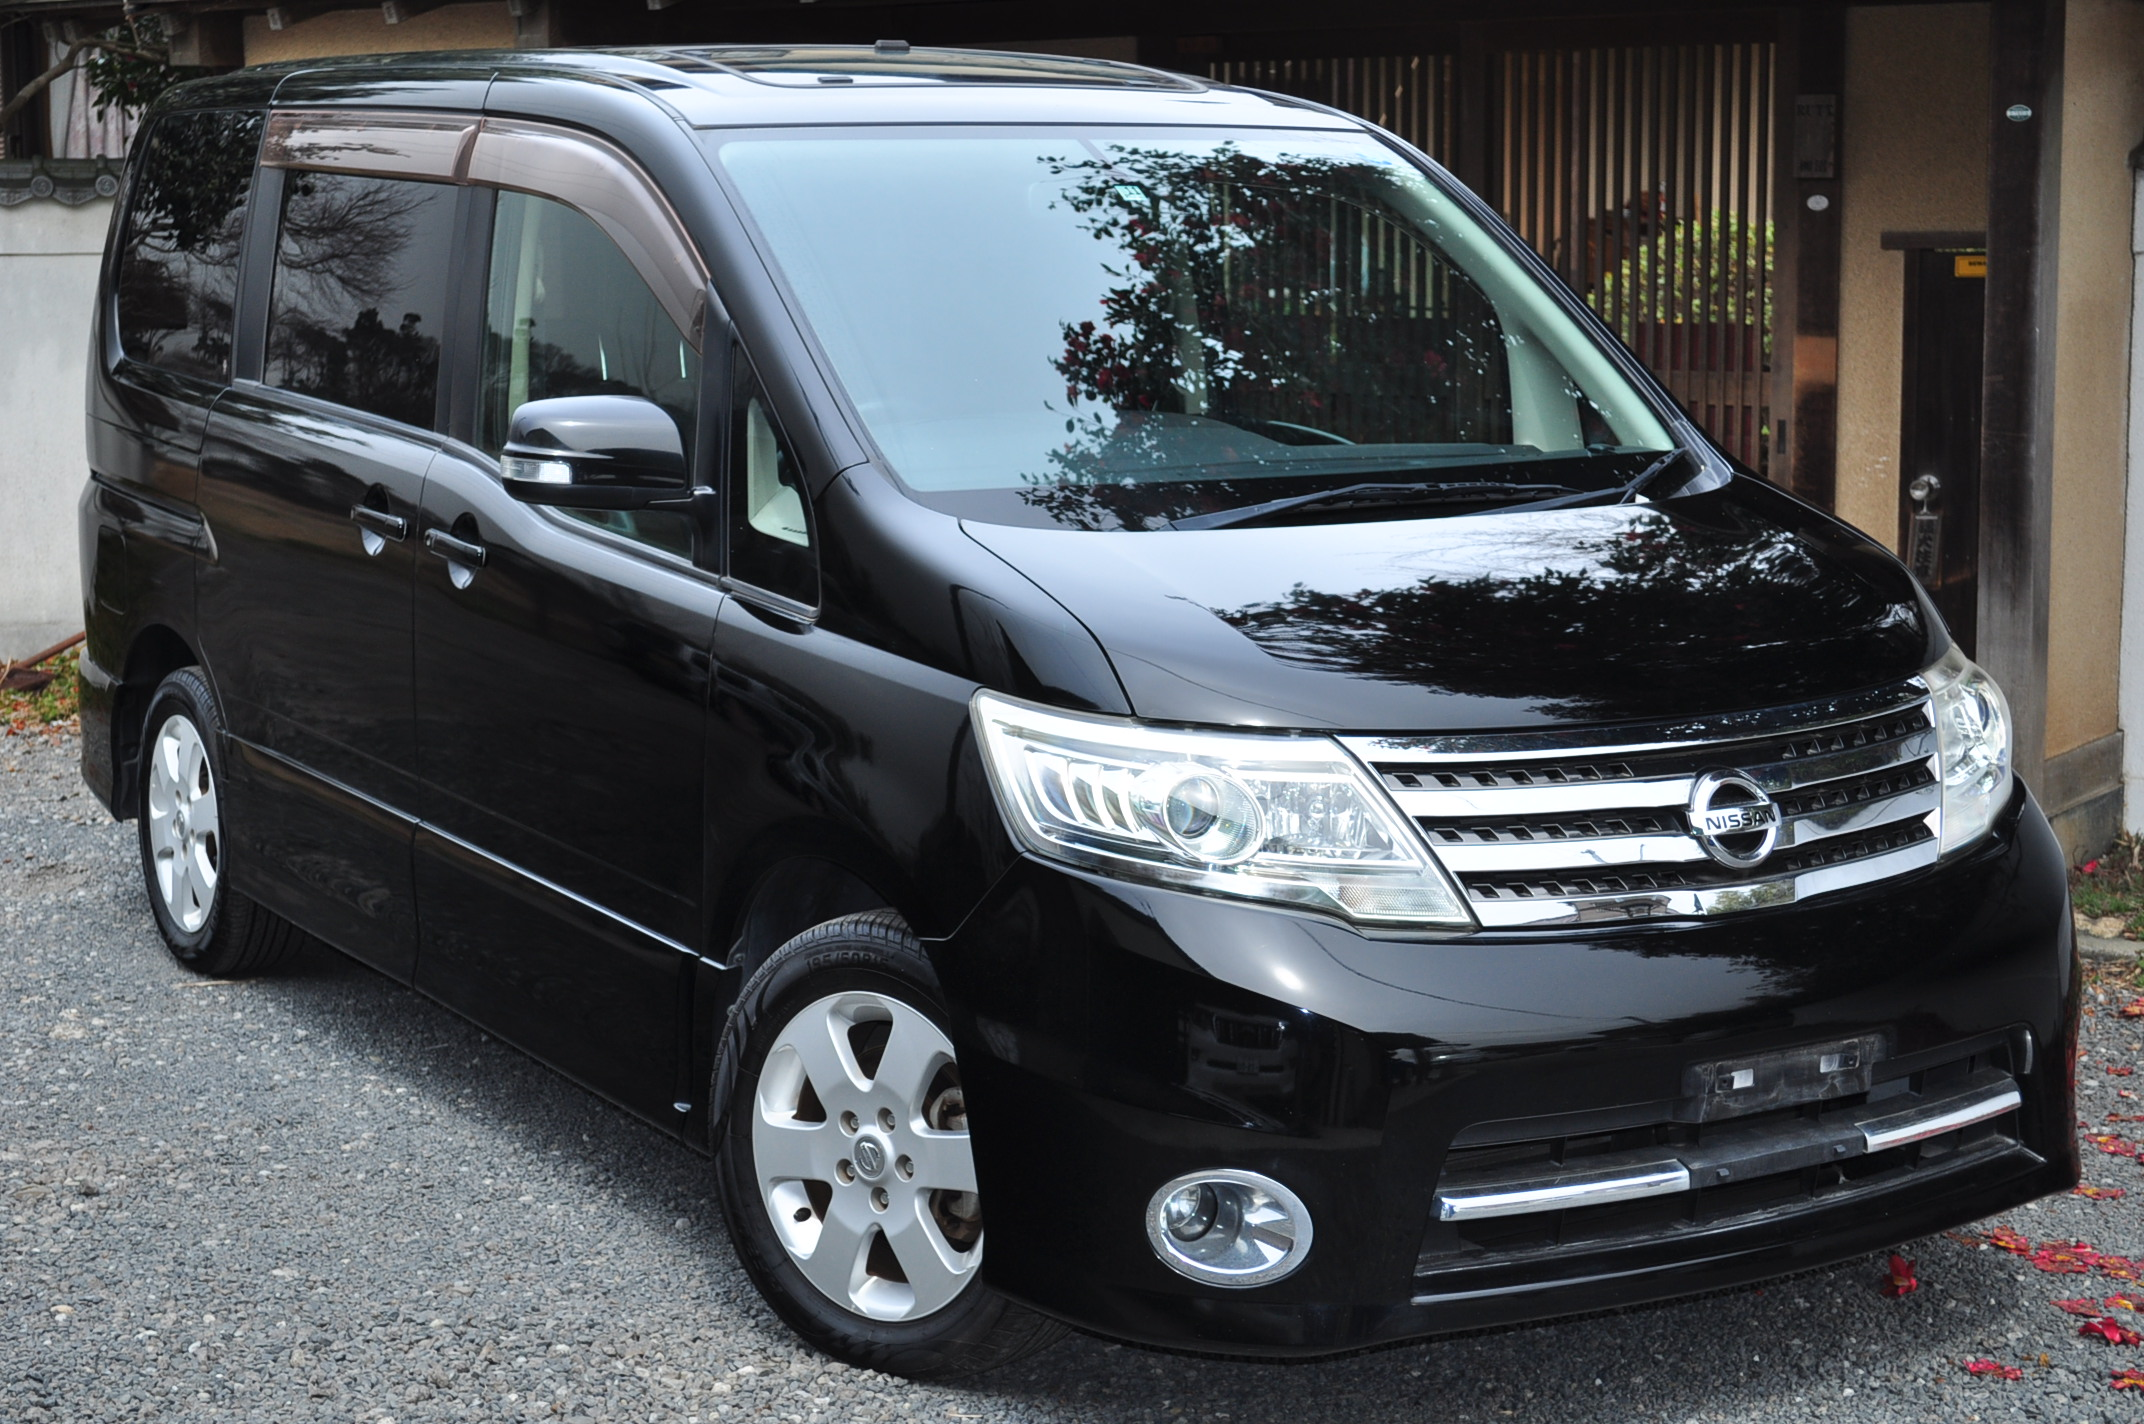 2009 (Nov) Nissan Serena (CC25) Highway Star with sunroofs 2000cc auto